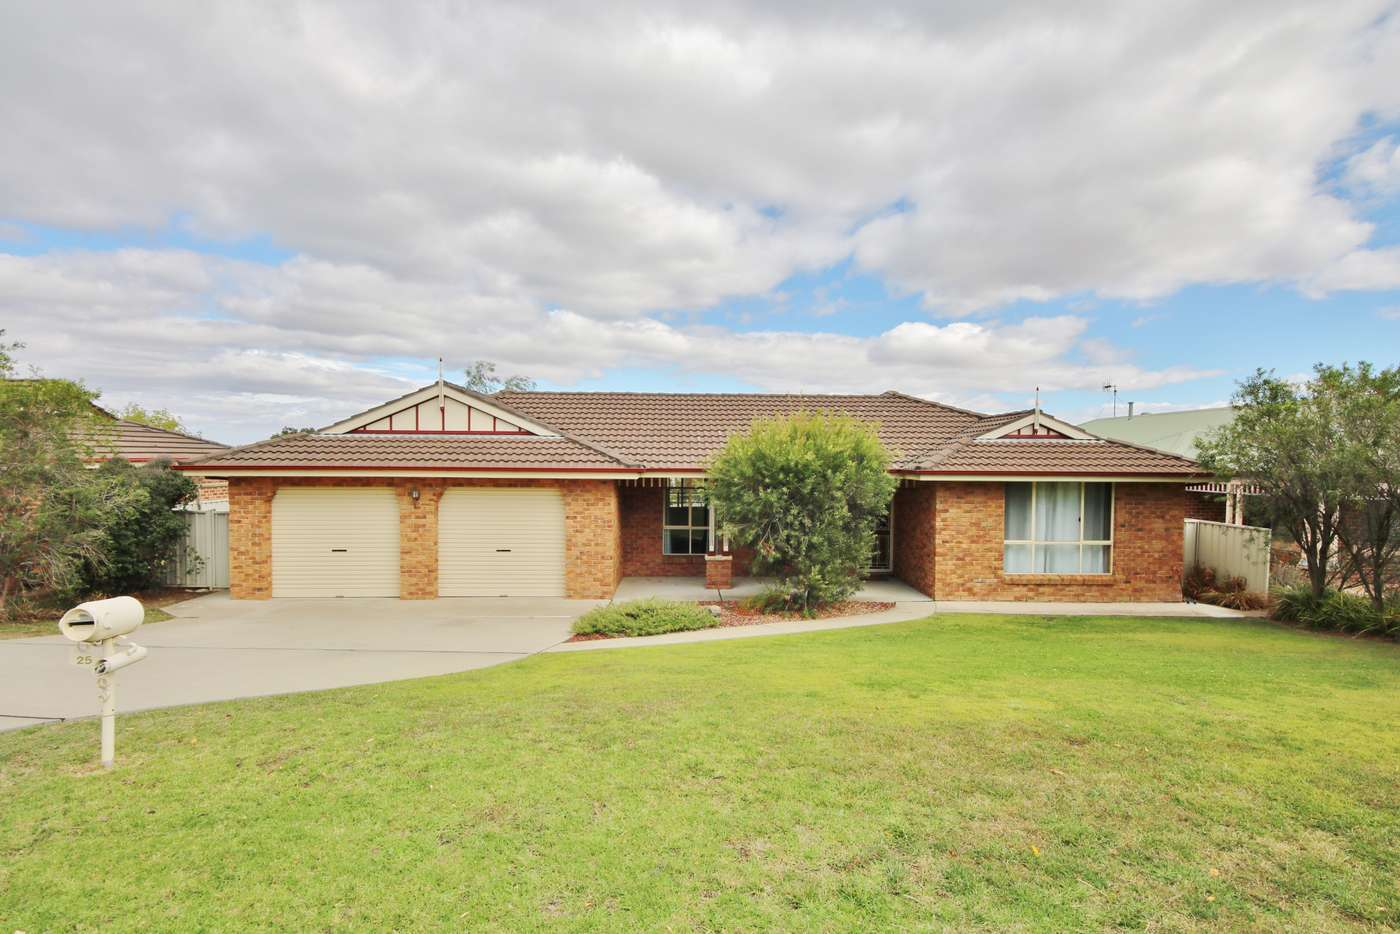 Main view of Homely house listing, 25 Freestone Way, Bathurst NSW 2795